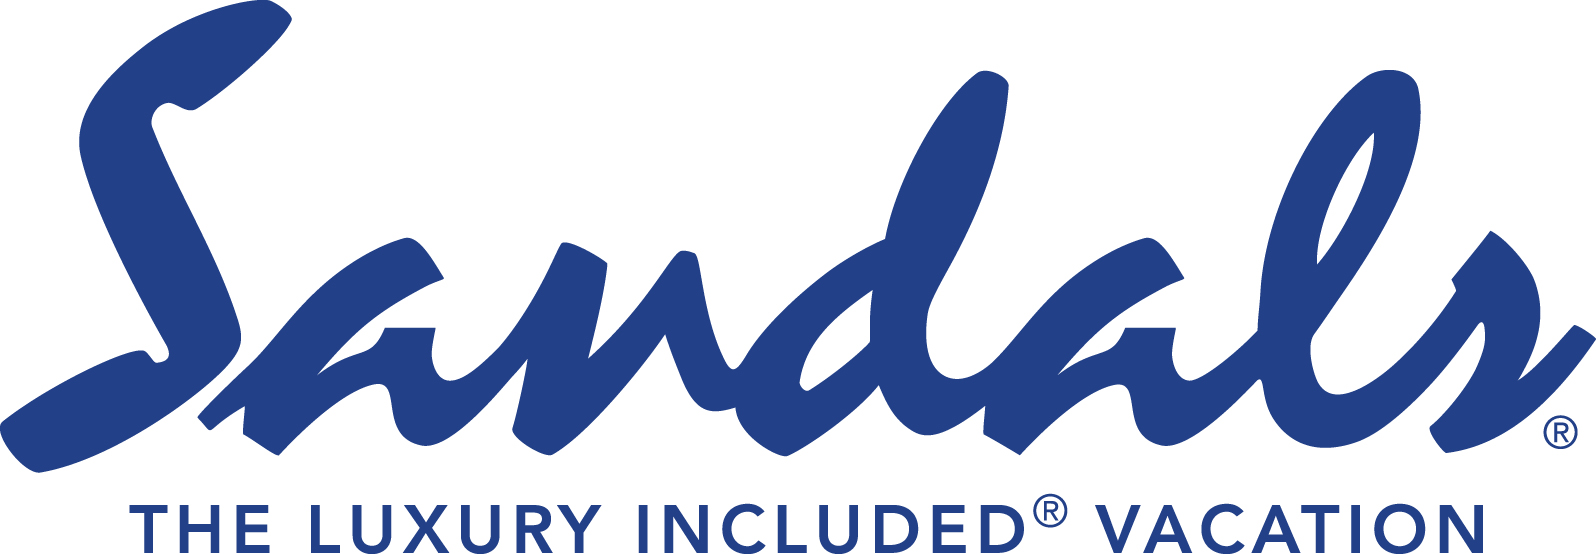 Win a 4-day, 3-night stay at Sandals Inn In Montego Bay